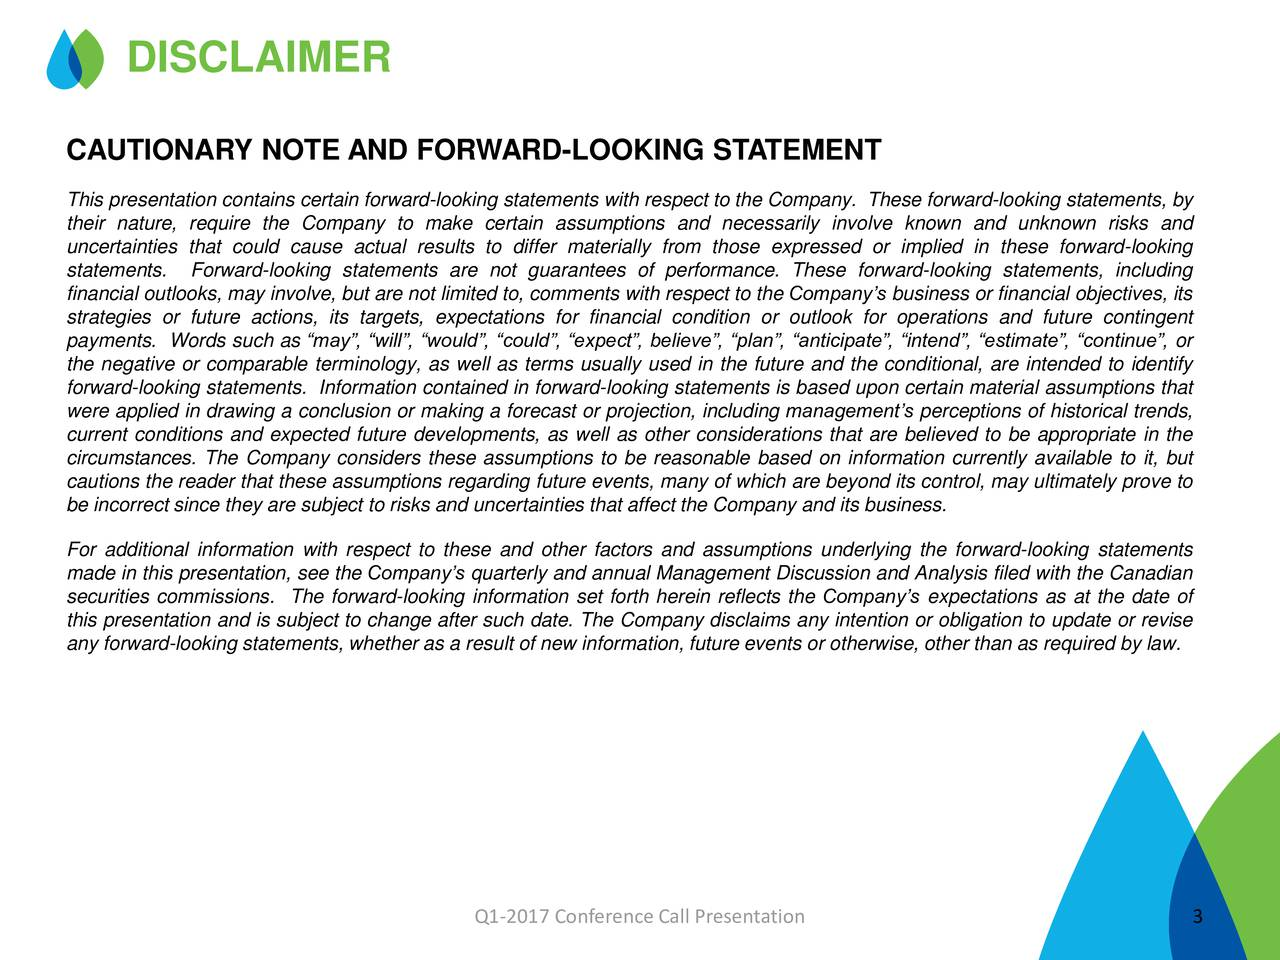 CAUTIONARY NOTE AND FORWARD-LOOKING STATEMENT This presentation contains certain forward-looking statements with respect to the Company. These forward-looking statements, by their nature, require the Company to make certain assumptions and necessarily involve known and unknown risks and uncertainties that could cause actual results to differ materially from those expressed or implied in these forward-looking statements. Forward-looking statements are not guarantees of performance. These forward-looking statements, including financial outlooks, may involve, but are not limited to, comments with respect to the Companys business or financial objectives, its strategies or future actions, its targets, expectations for financial condition or outlook for operations and future contingent payments. Words such as may, will, would, could, expect, believe, plan, anticipate, intend, estimate, continue, or the negative or comparable terminology, as well as terms usually used in the future and the conditional, are intended to identify forward-looking statements. Information contained in forward-looking statements is based upon certain material assumptions that were applied in drawing a conclusion or making a forecast or projection, including managements perceptions of historical trends, current conditions and expected future developments, as well as other considerations that are believed to be appropriate in the circumstances. The Company considers these assumptions to be reasonable based on information currently available to it, but cautions the reader that these assumptions regarding future events, many of which are beyond its control, may ultimately prove to be incorrect since they are subject to risks and uncertainties that affect the Company and its business. For additional information with respect to these and other factors and assumptions underlying the forward-looking statements made in this presentation, see the Companys quarterly and annual Management Discussion and Anal